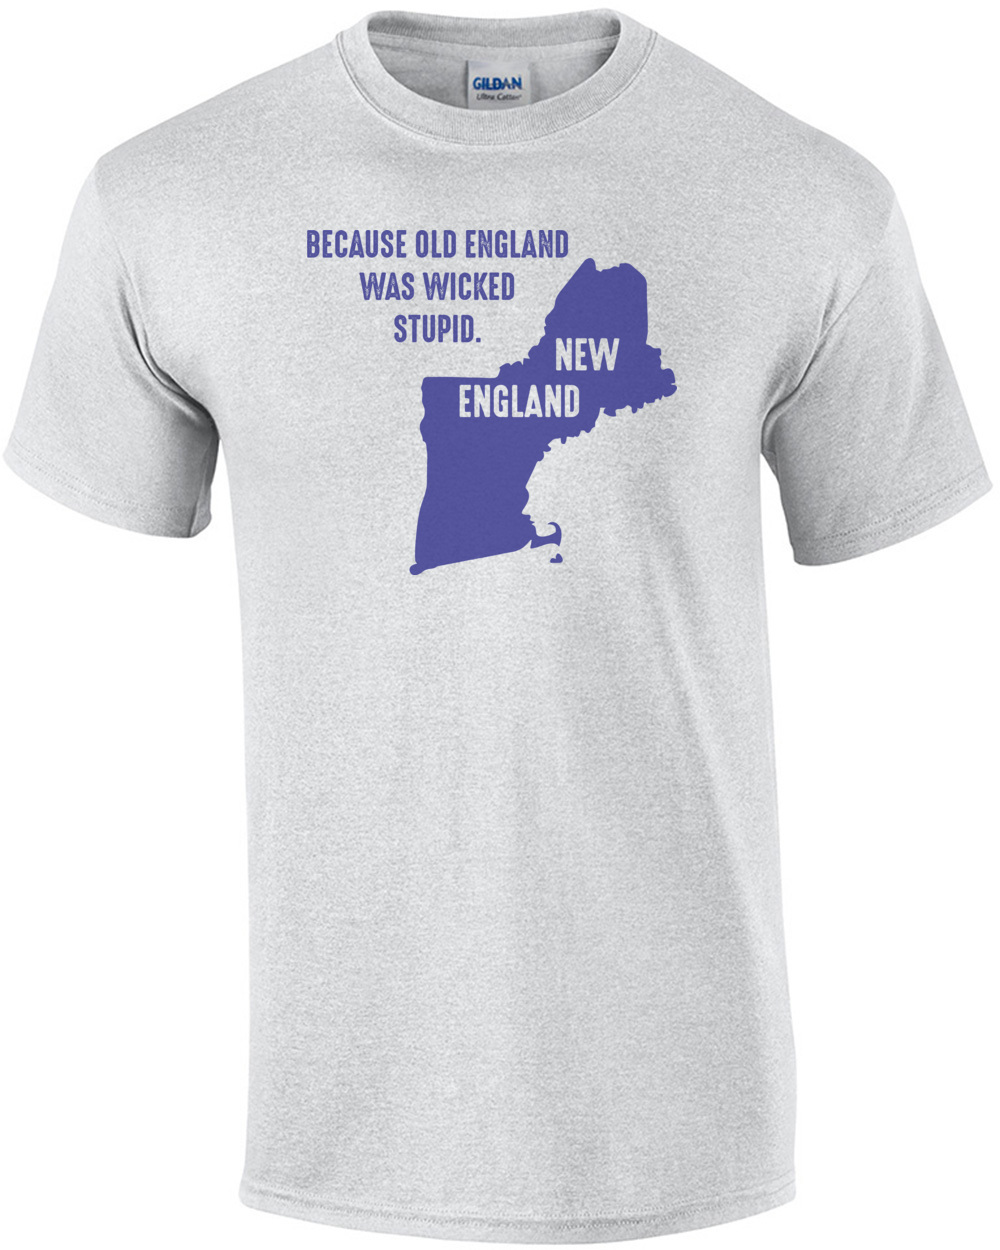 f6eeeb60e because-old-england-was-wicked-stupid-new-england--maine-vermont-new-hampshire- massachusetts-rhode-island-and-connecticut--new-england-tshirt-mens-regular-  ...